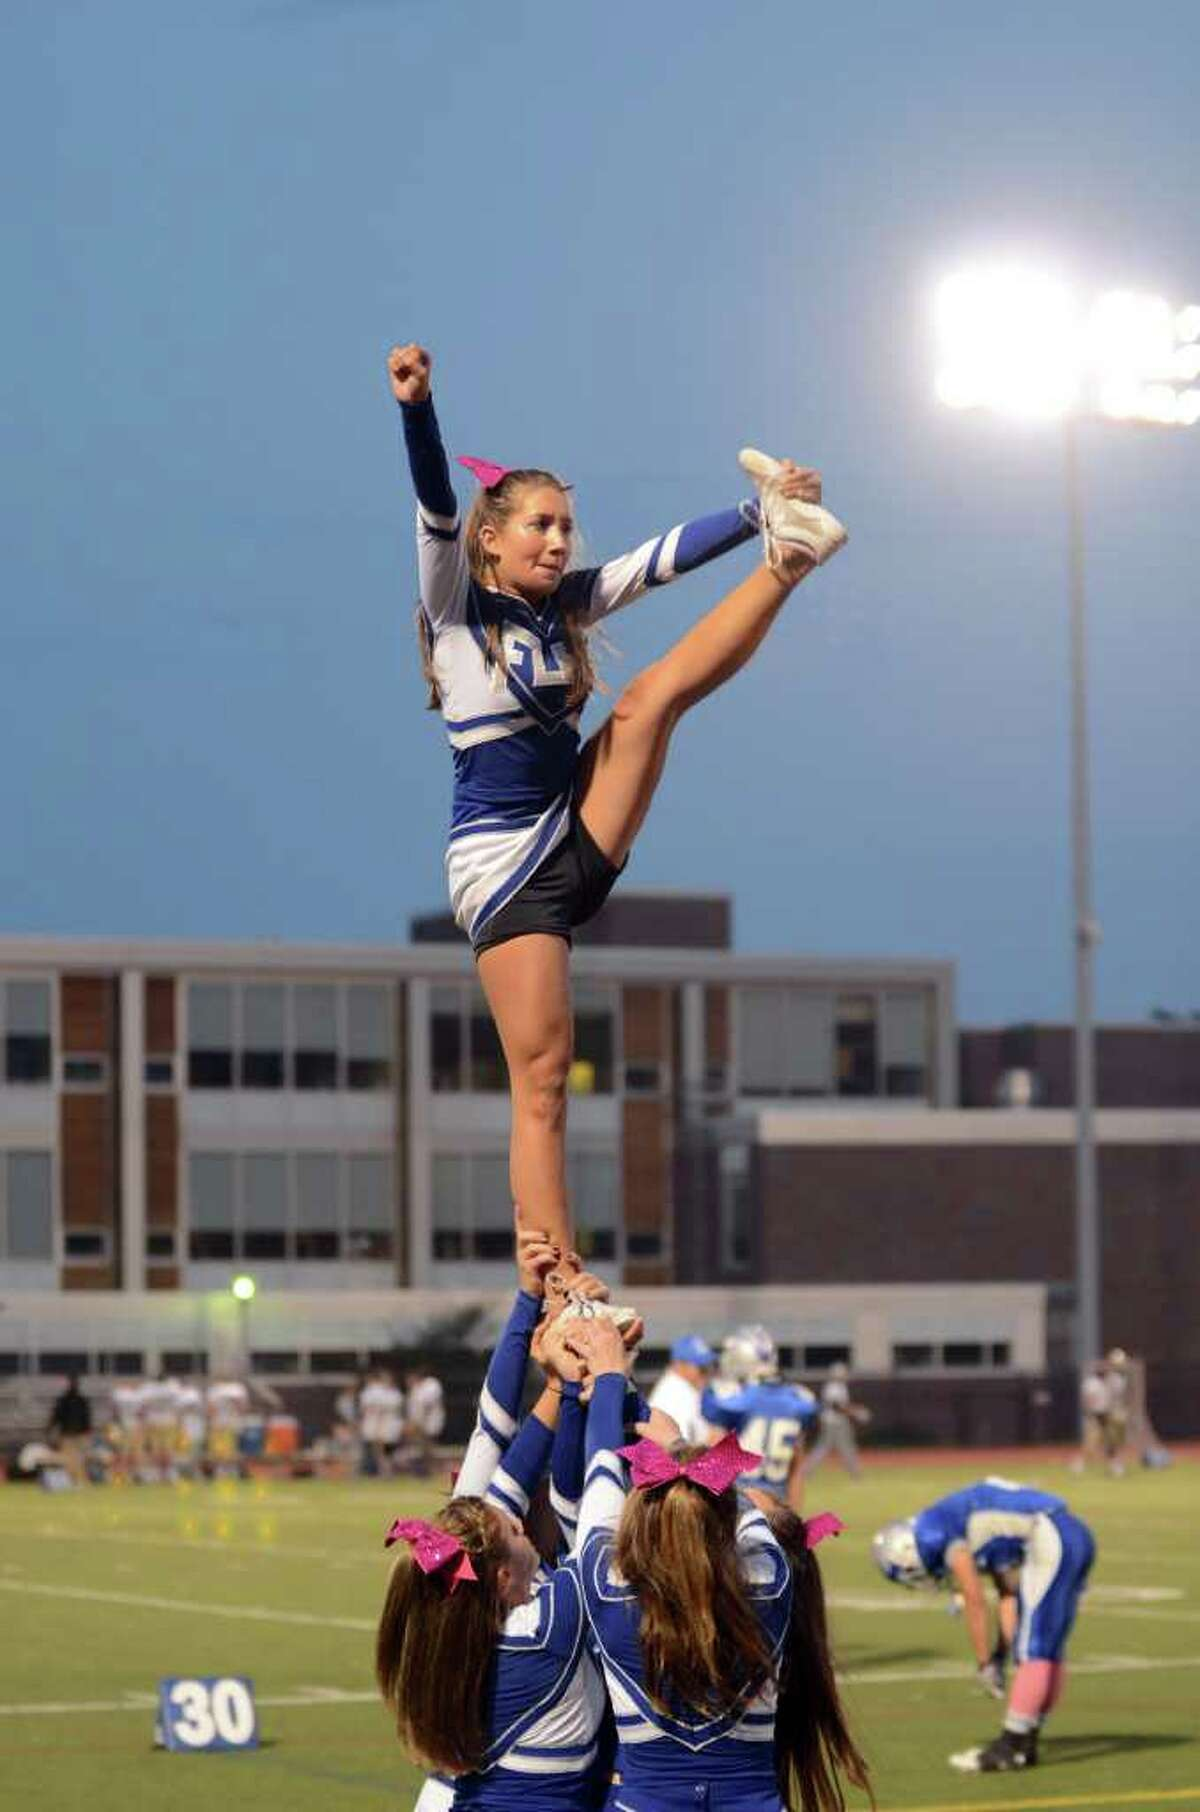 Fairfield Ludlowe cheerleaders perform on the sideline during the football game against Trumbull at Fairfield Ludlowe High School on Friday, Sept. 30, 2011.